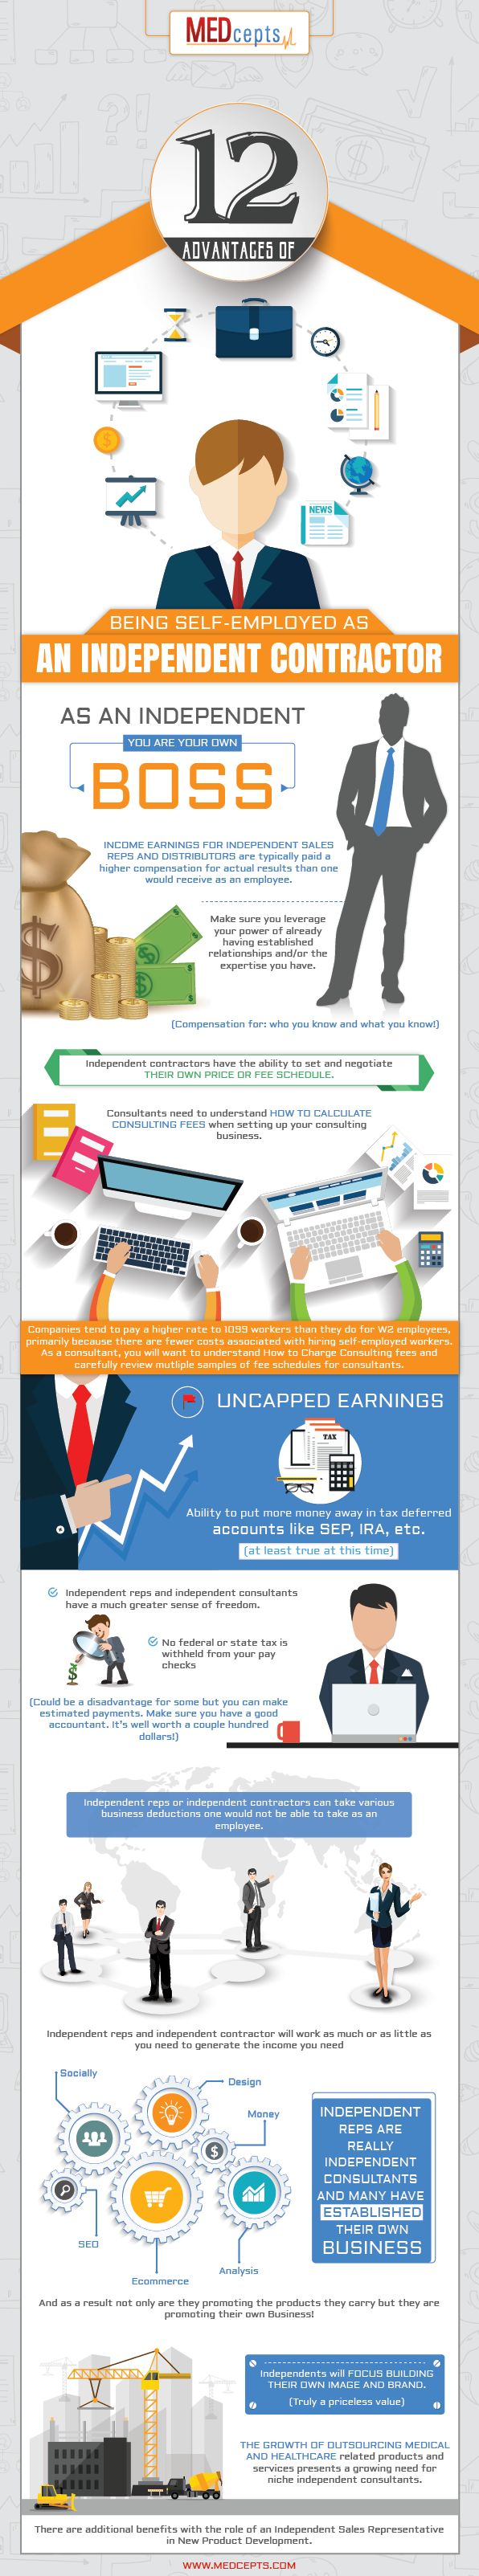 best images about independent contract medical advantages of being self employed independent contractor infographic the largest medical network of independent s reps independent distributors